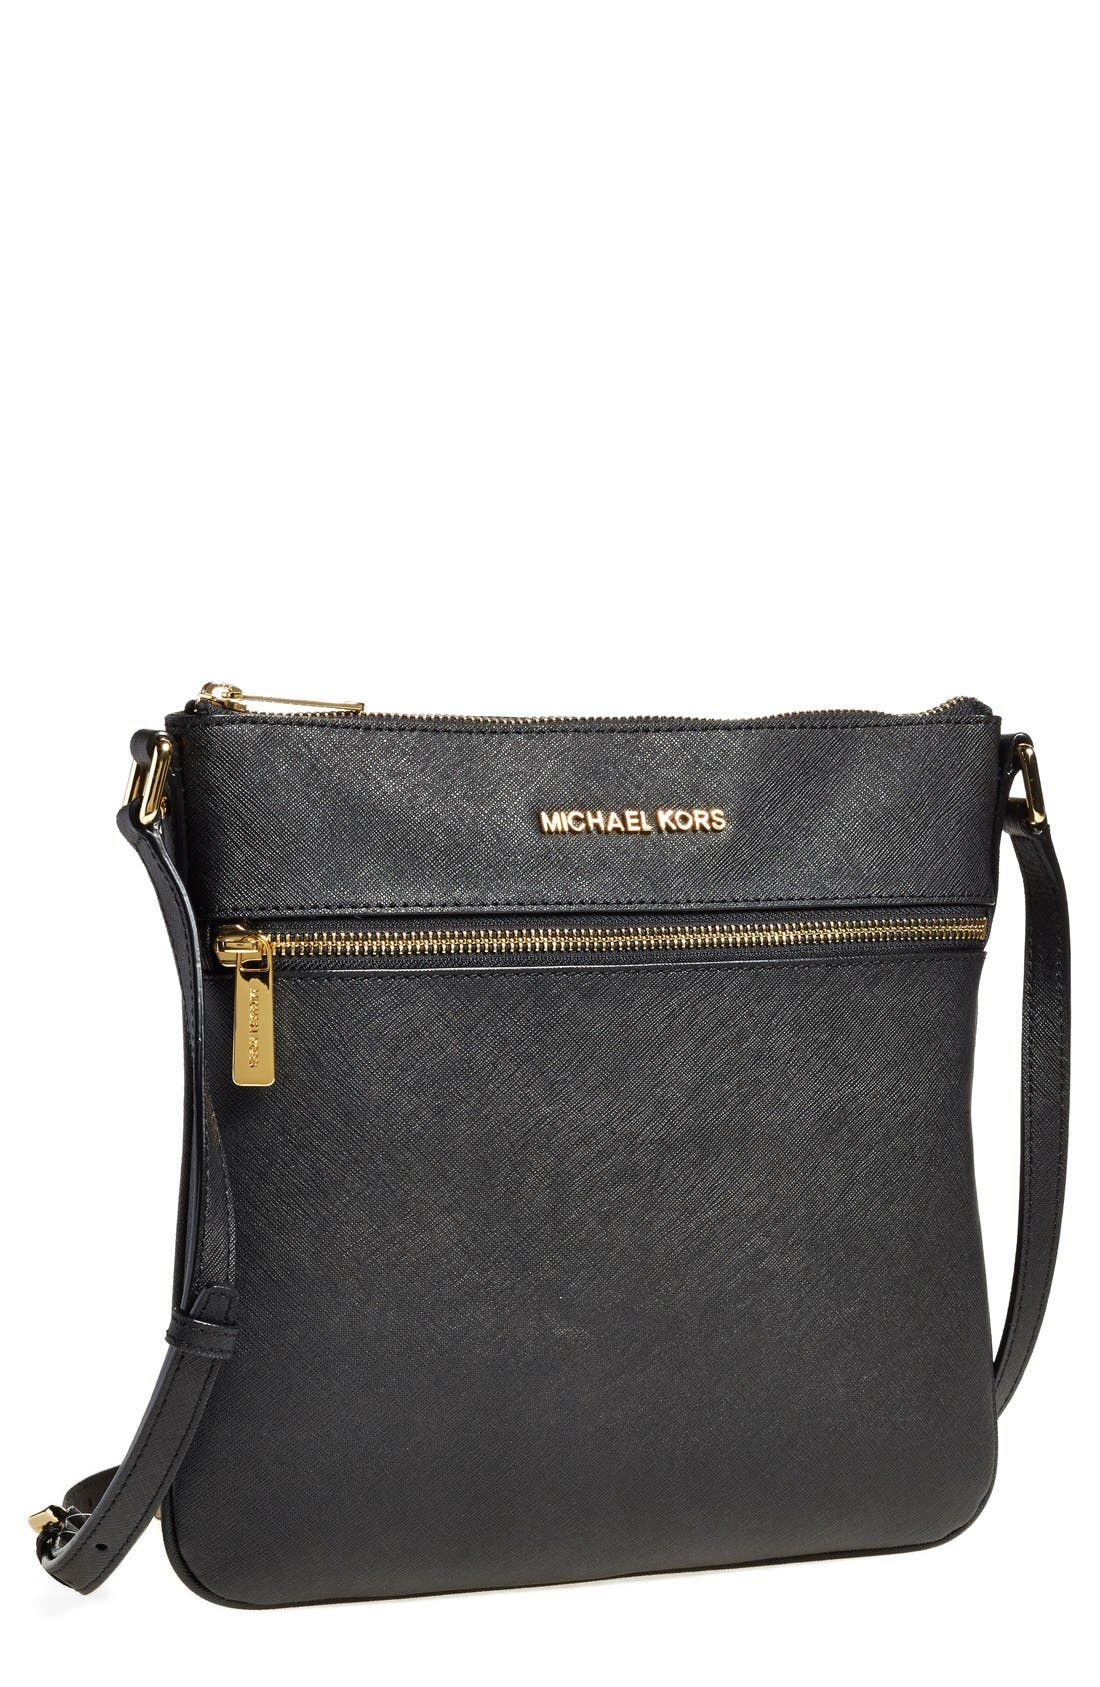 'Bedford' Saffiano Leather Crossbody Bag,                         Main,                         color, 001